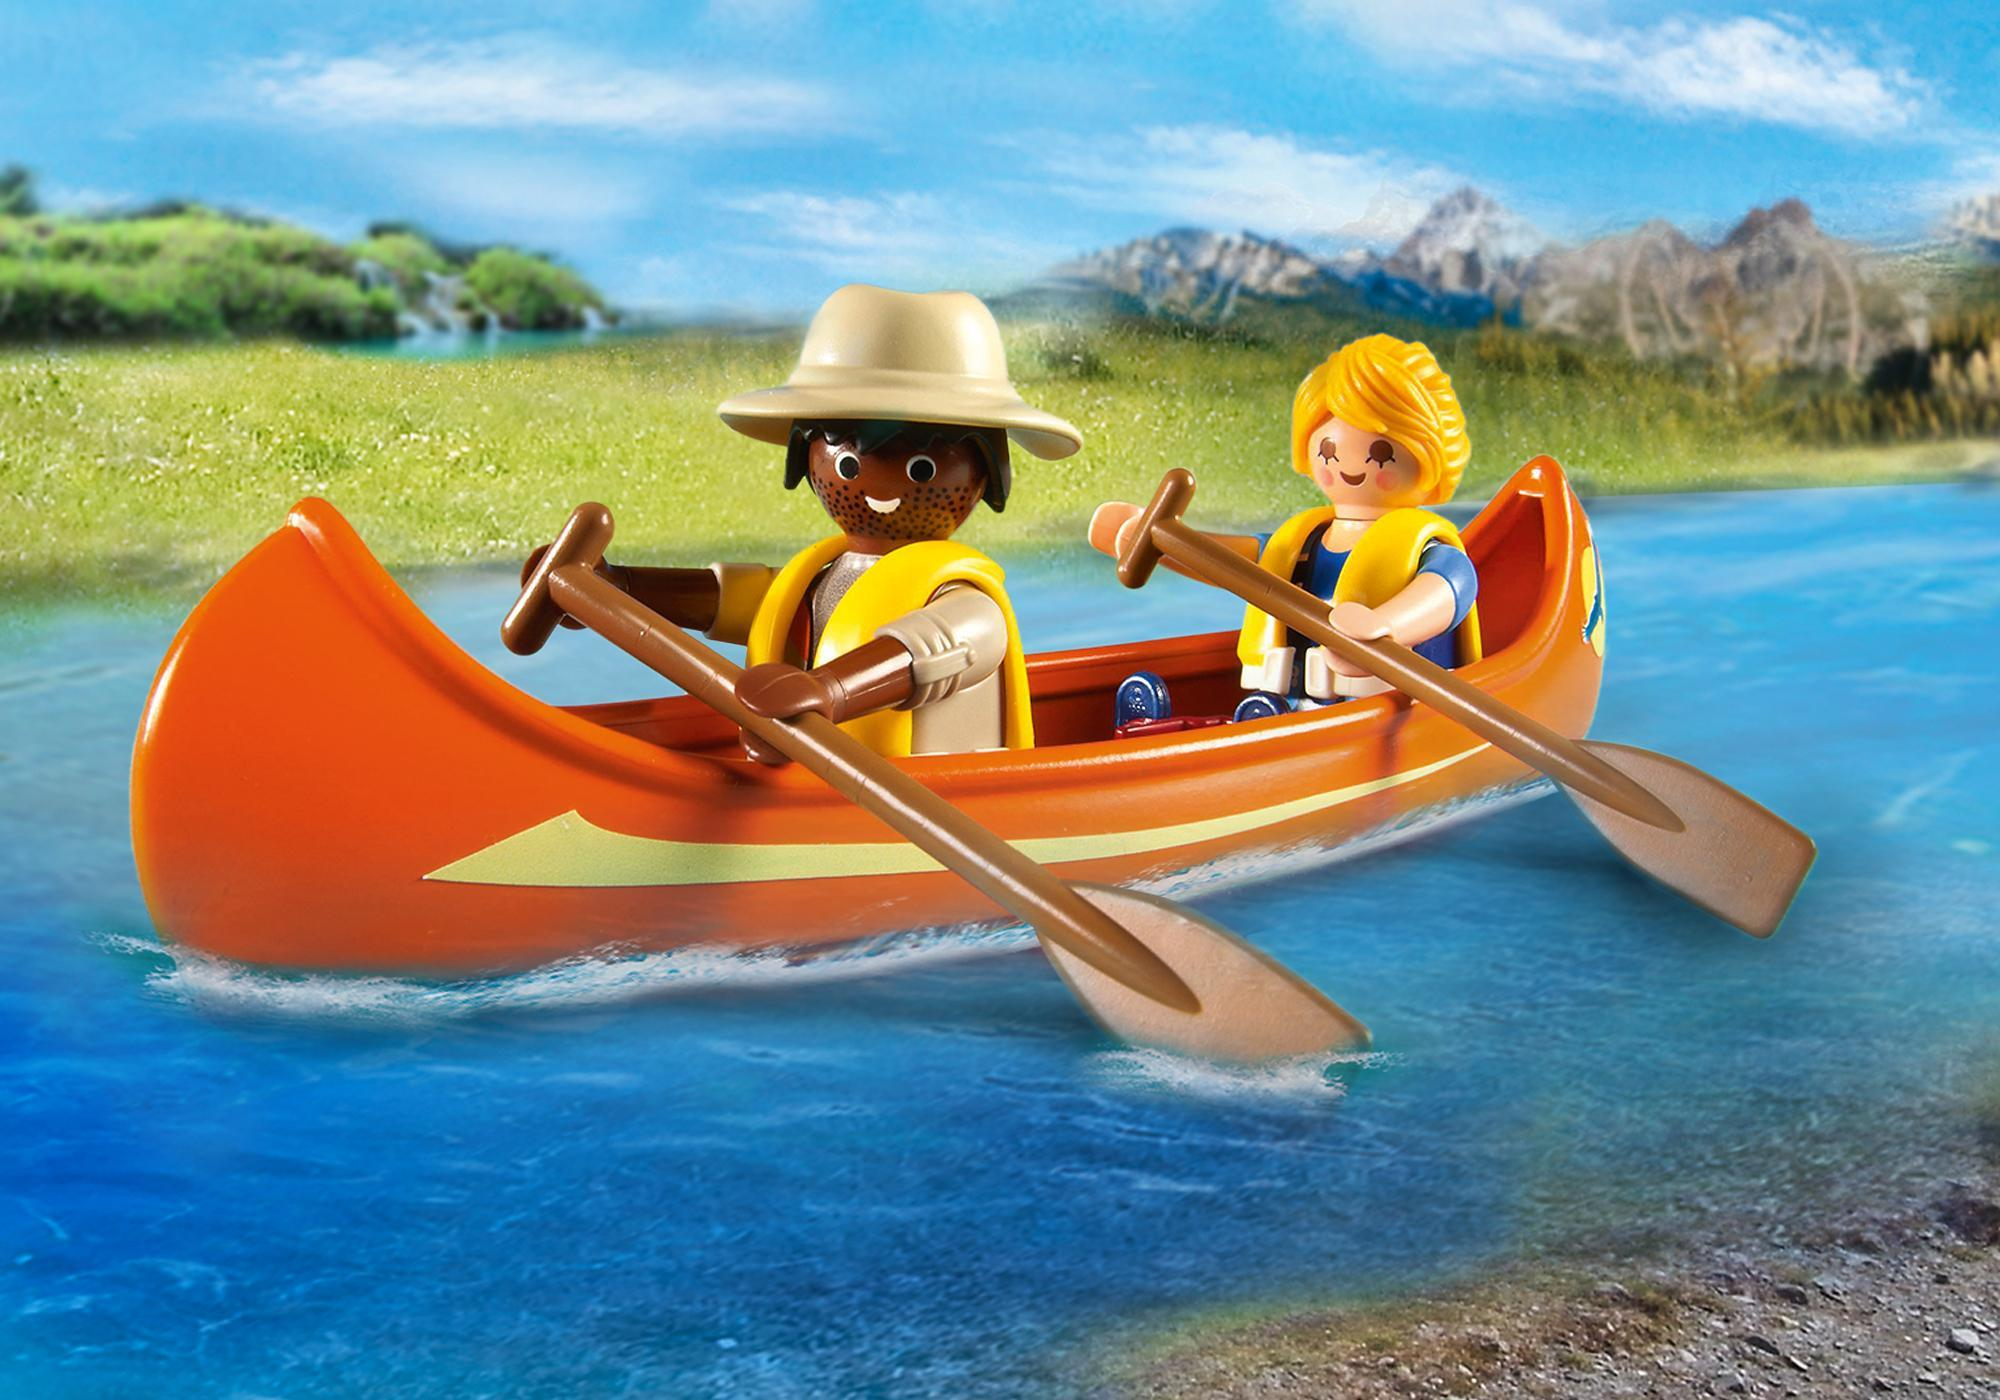 http://media.playmobil.com/i/playmobil/5558_product_extra3/Pickup 4x4